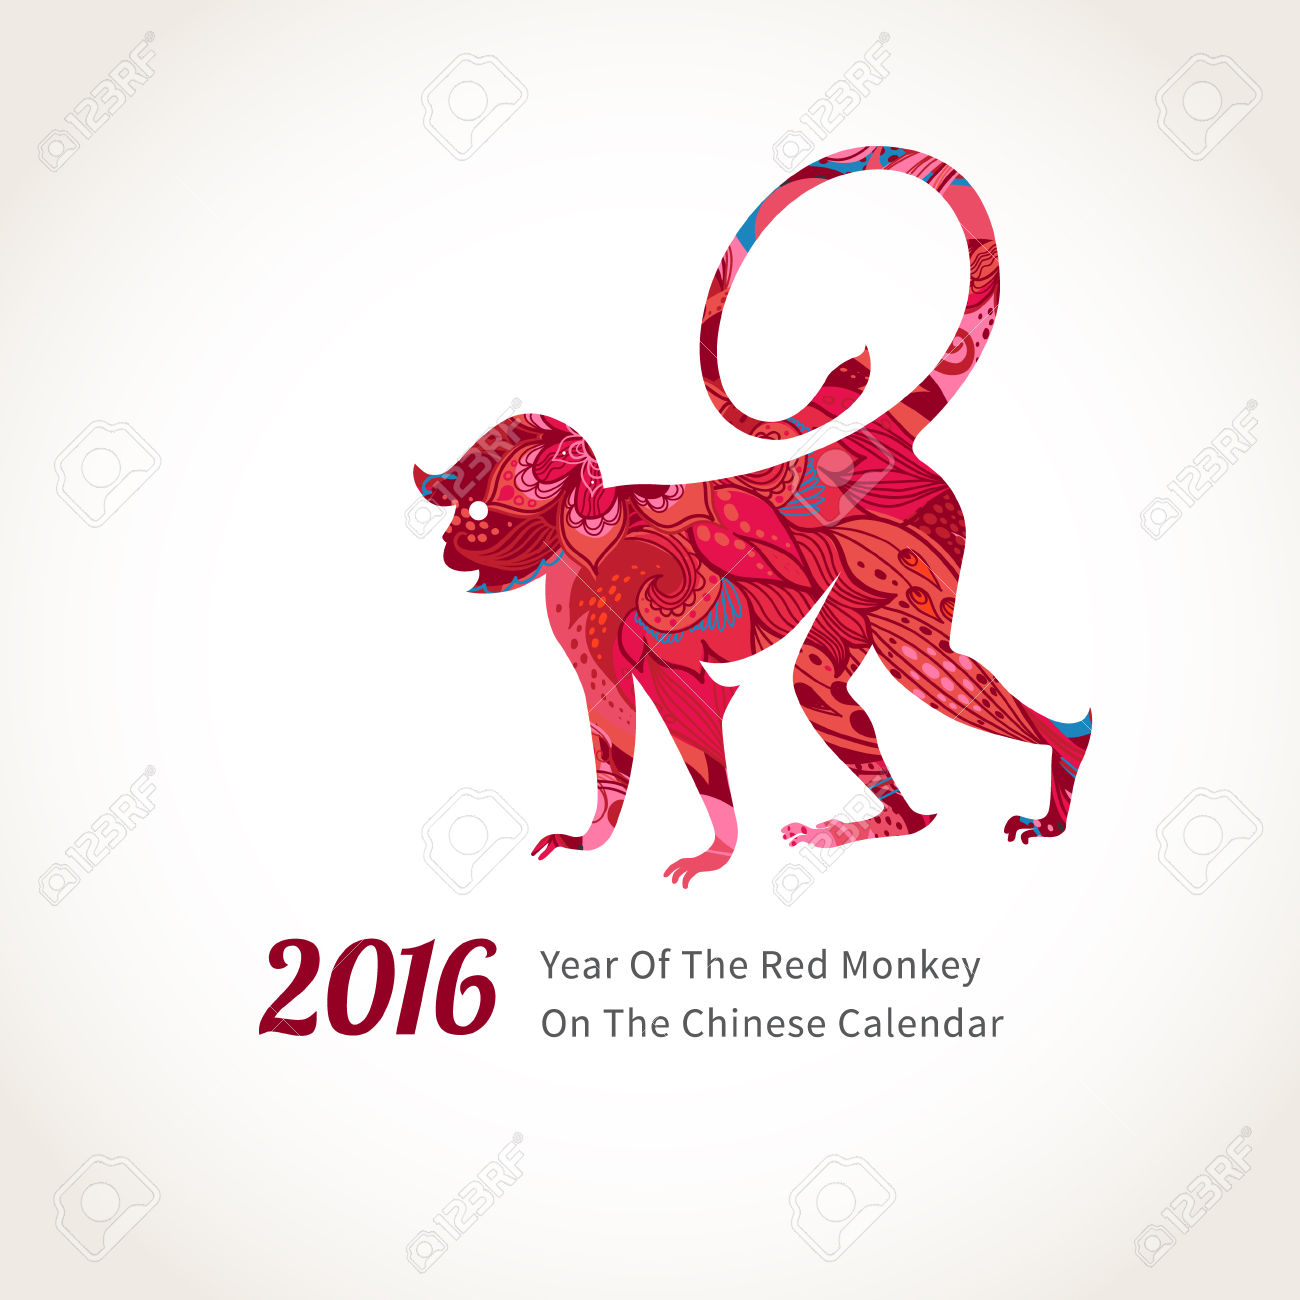 Monkey clipart icon new year